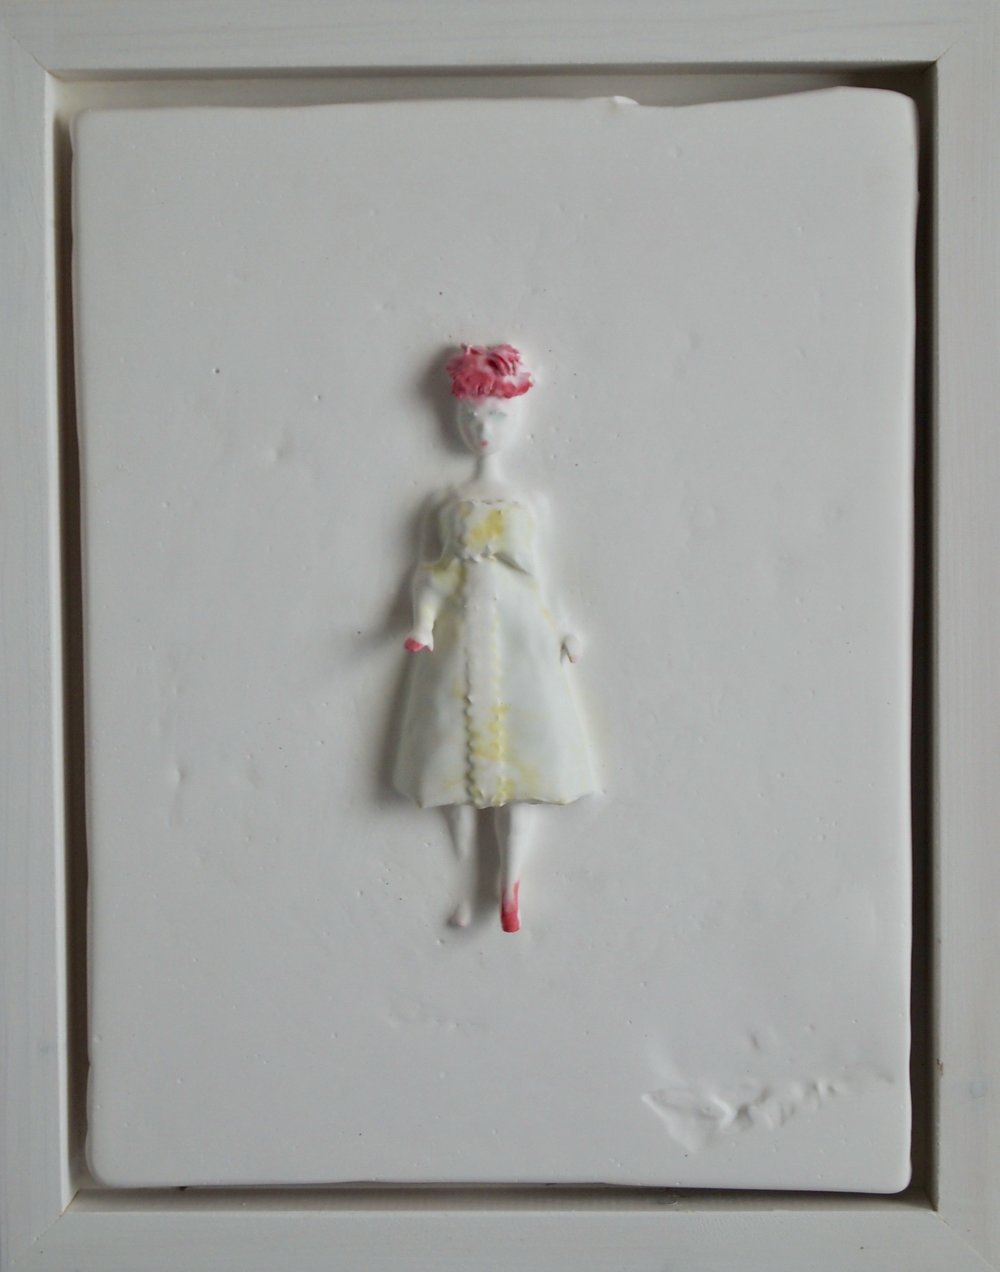 <b>lucy</b><br>plaster, found object, inks<br>11 x 9 in.